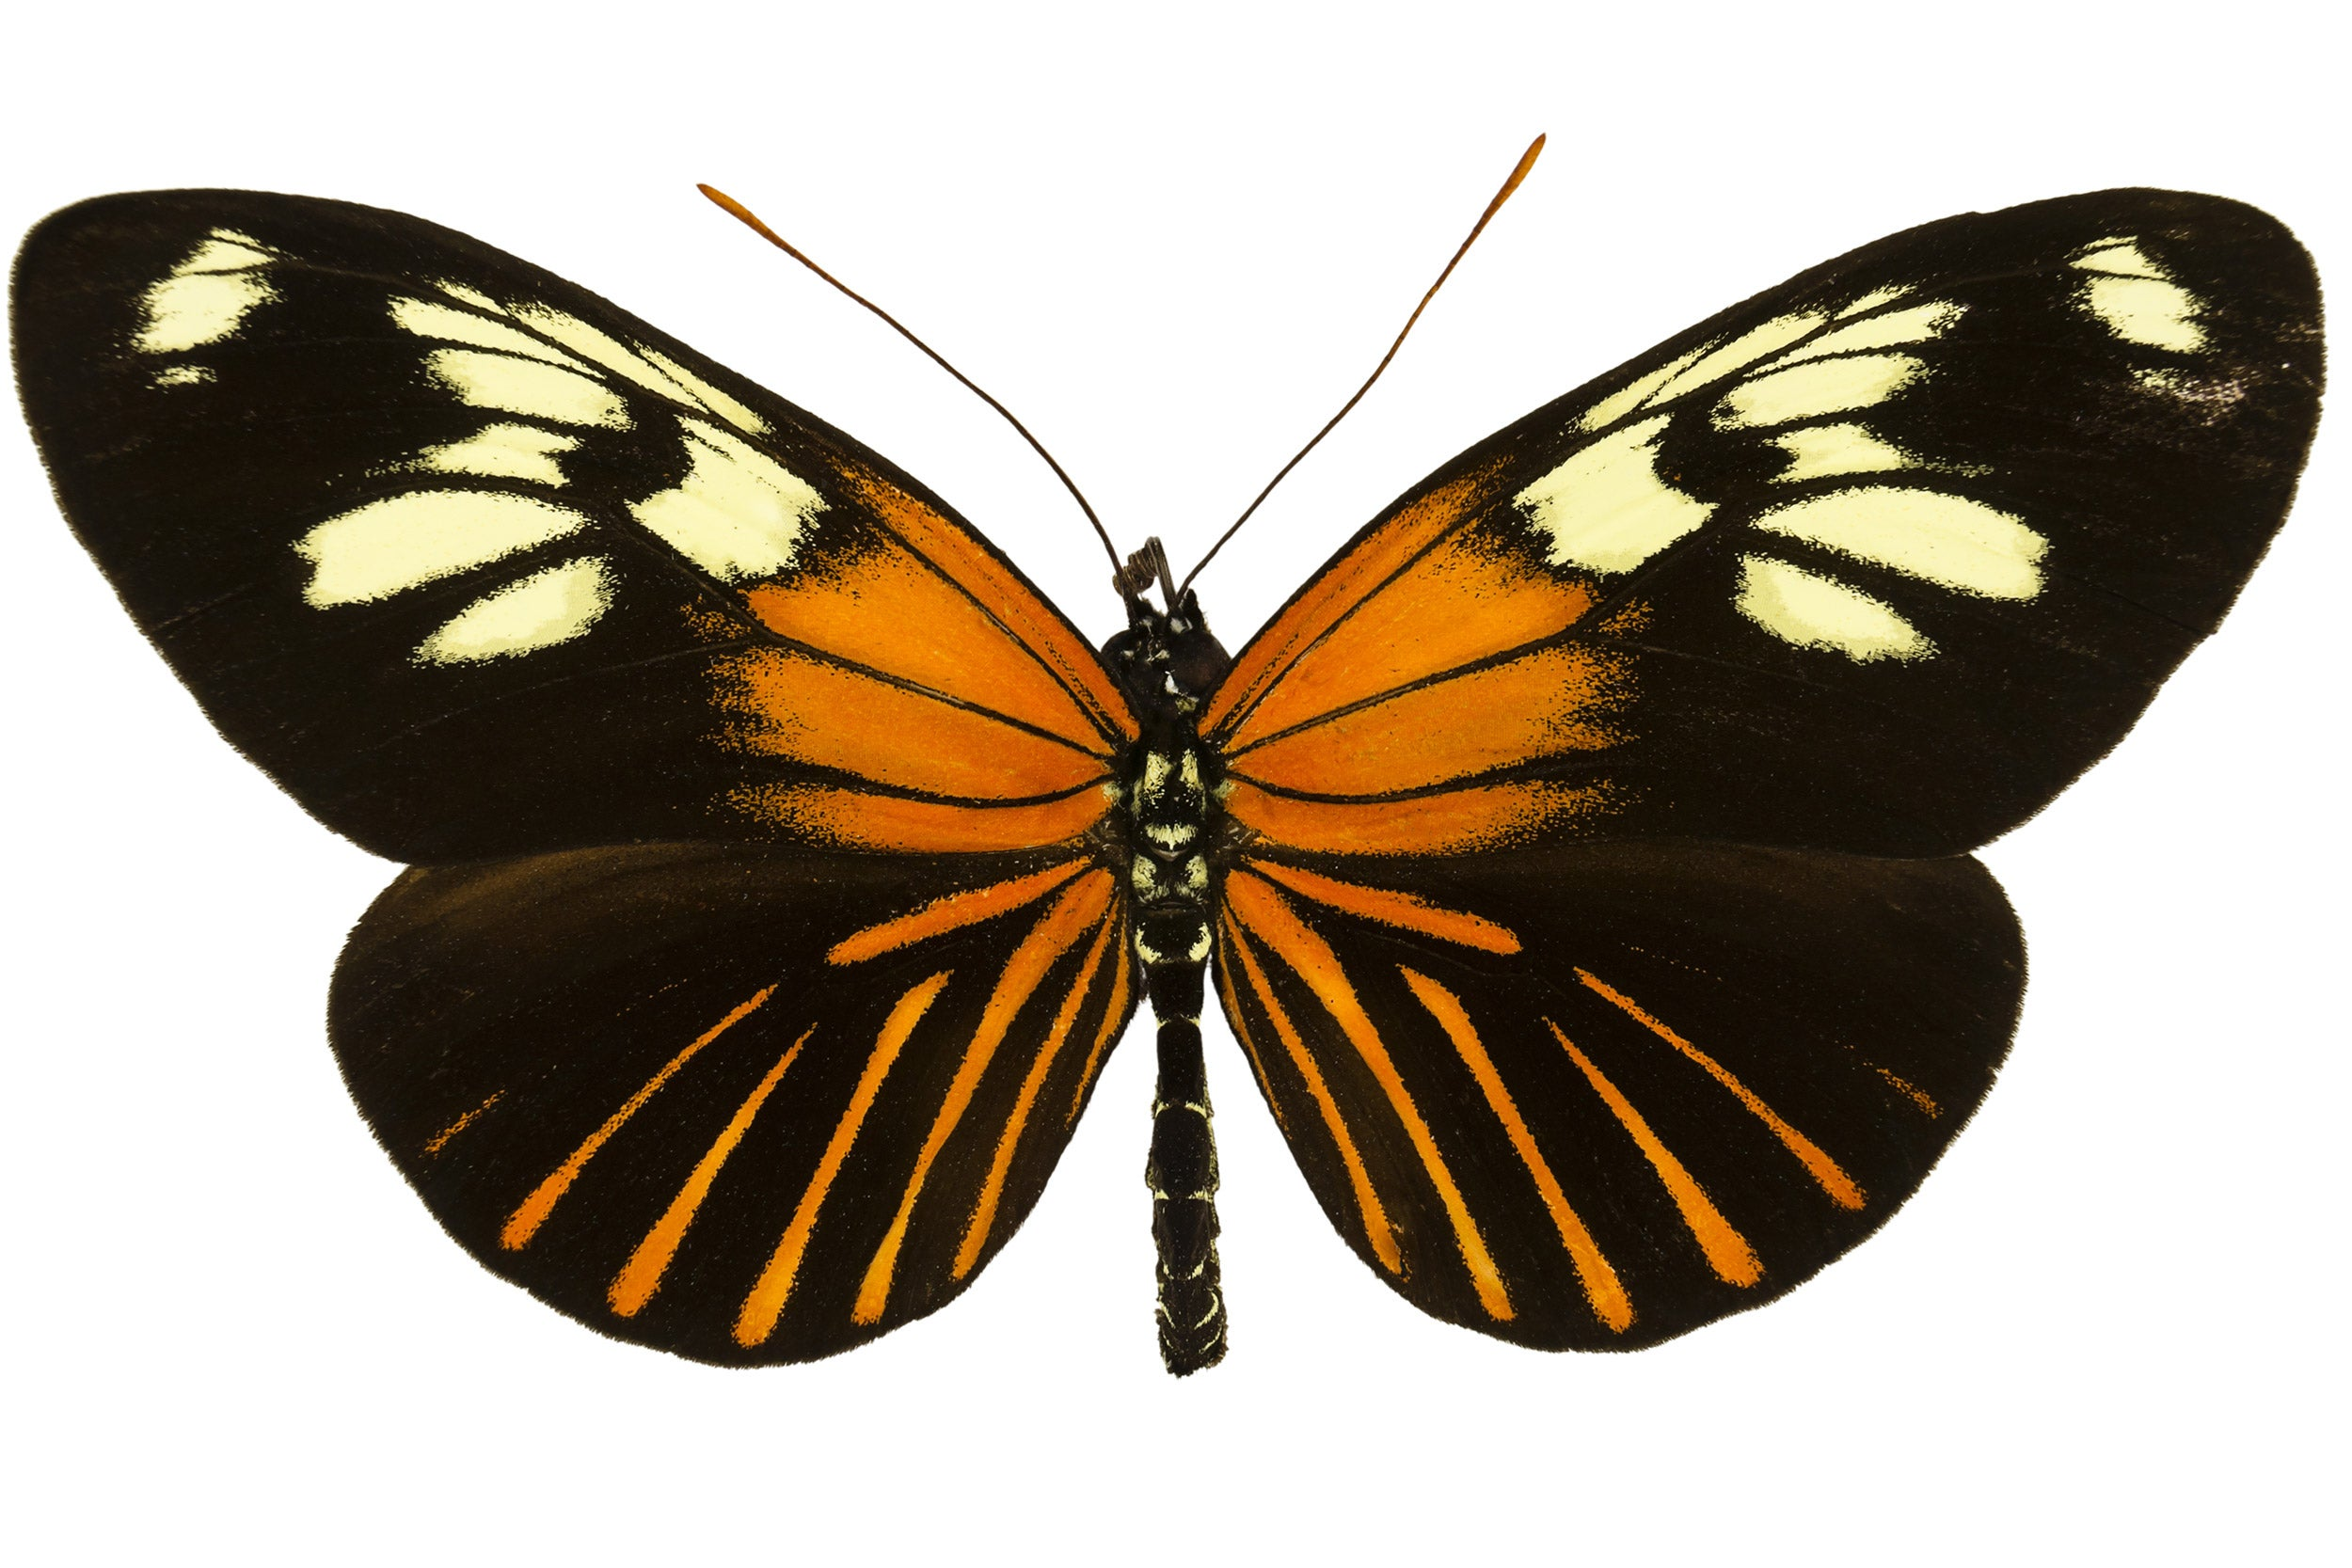 Heliconius xanthocles butterfly illustration with wings spread.